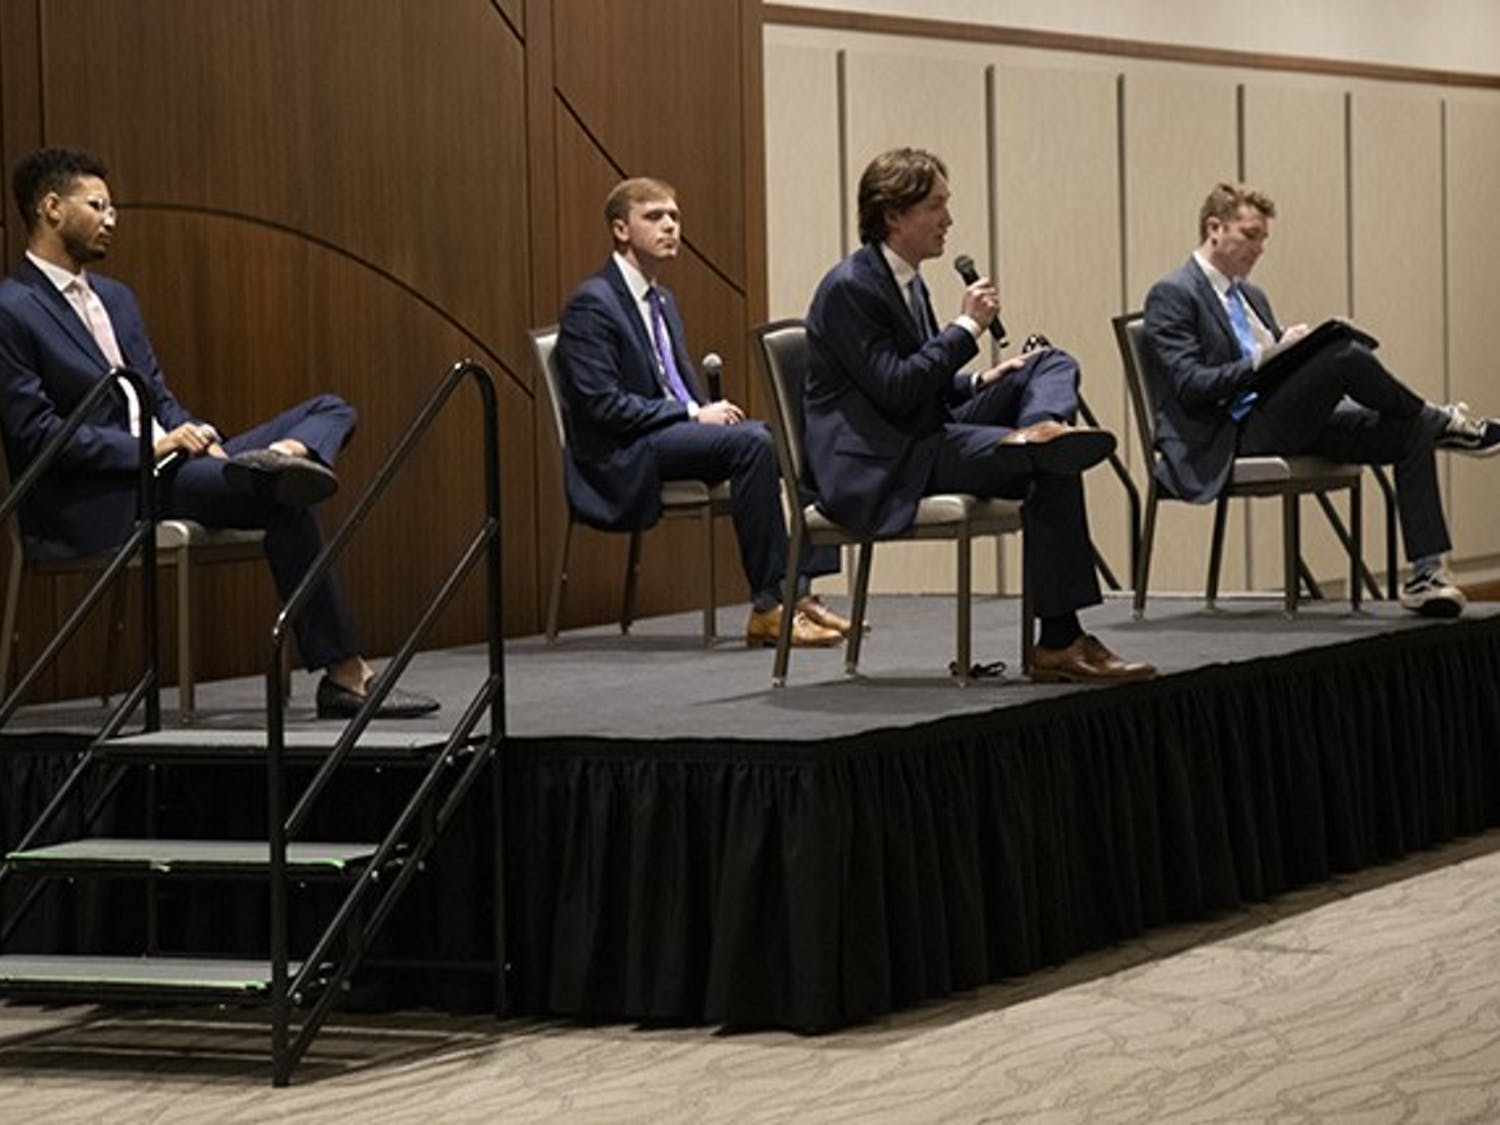 Student body president candidates (from left to right) Aidan Baker, Alex Harrell and Cameron Butler listen to Caden Askew's answer to a question. The candidates were asked a series of general questions, individual questions and questions pulled from social media.